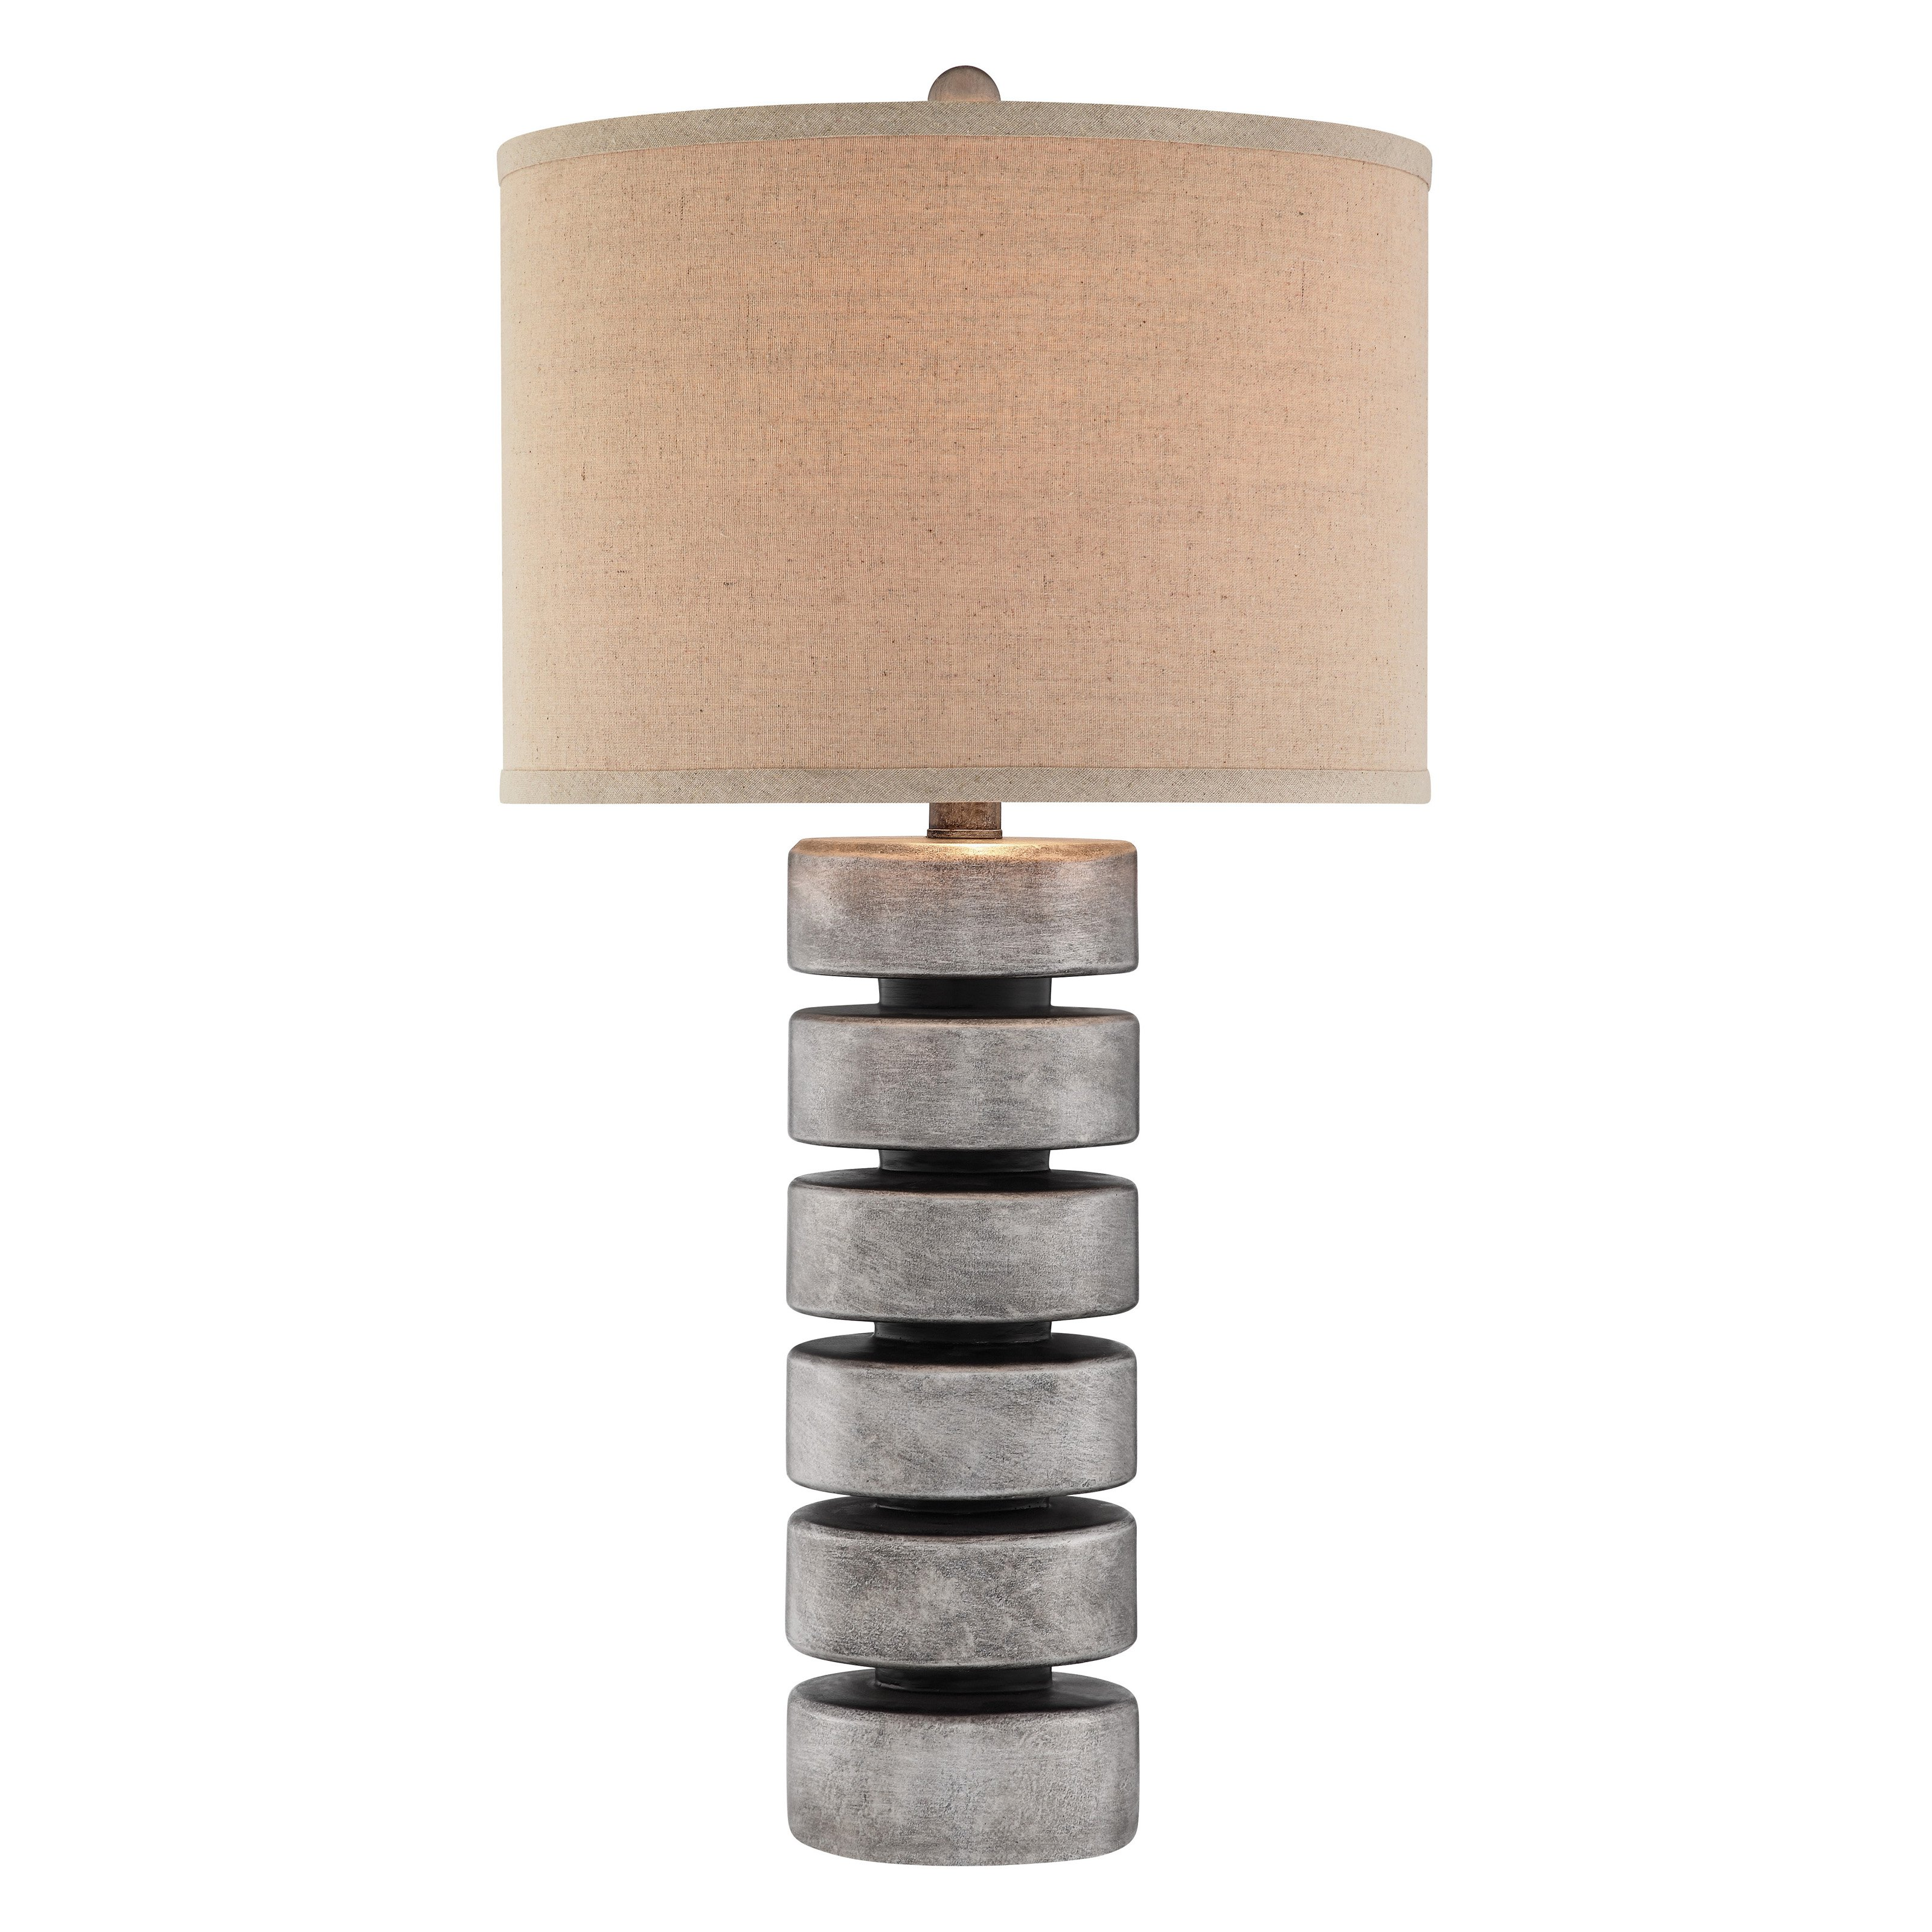 table lamp switch base america hotel style with master flesner brushed steel accent usb port catalina lighting ethan way large square marble coffee modern sideboard reading ikea